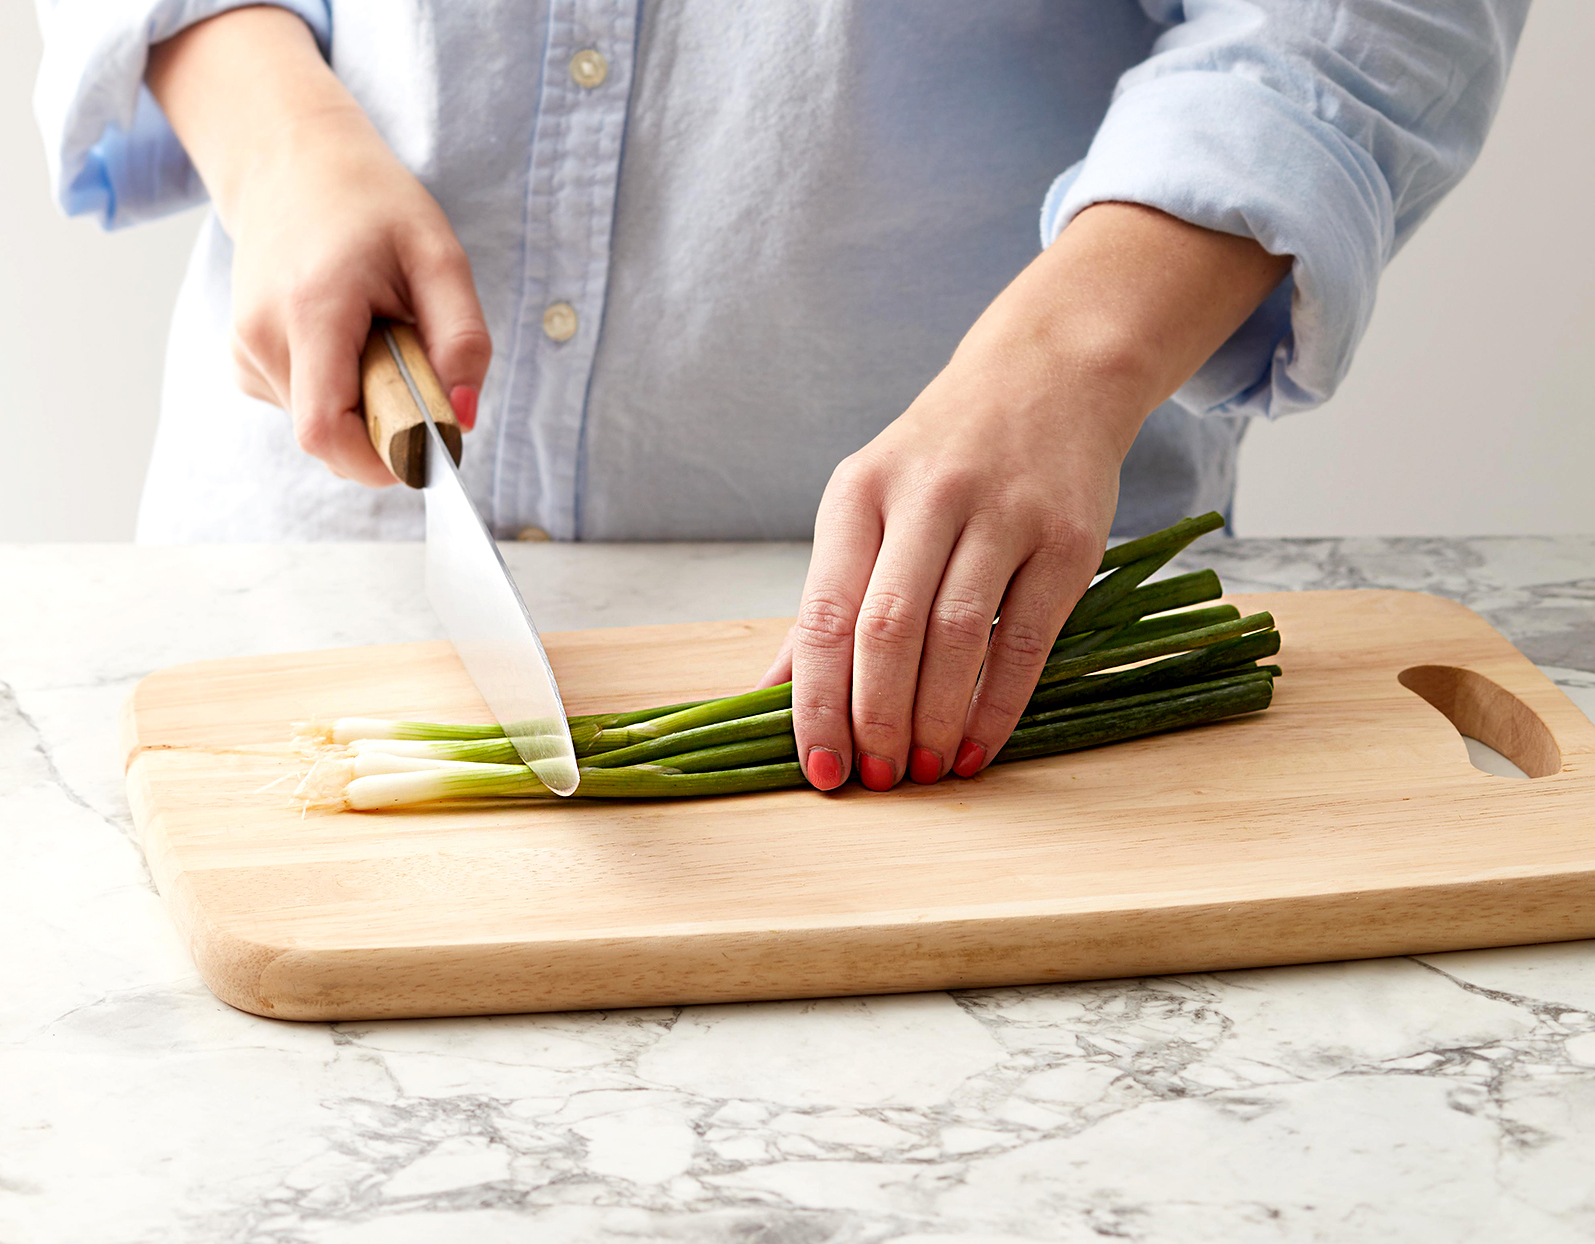 Person cutting green onion ends